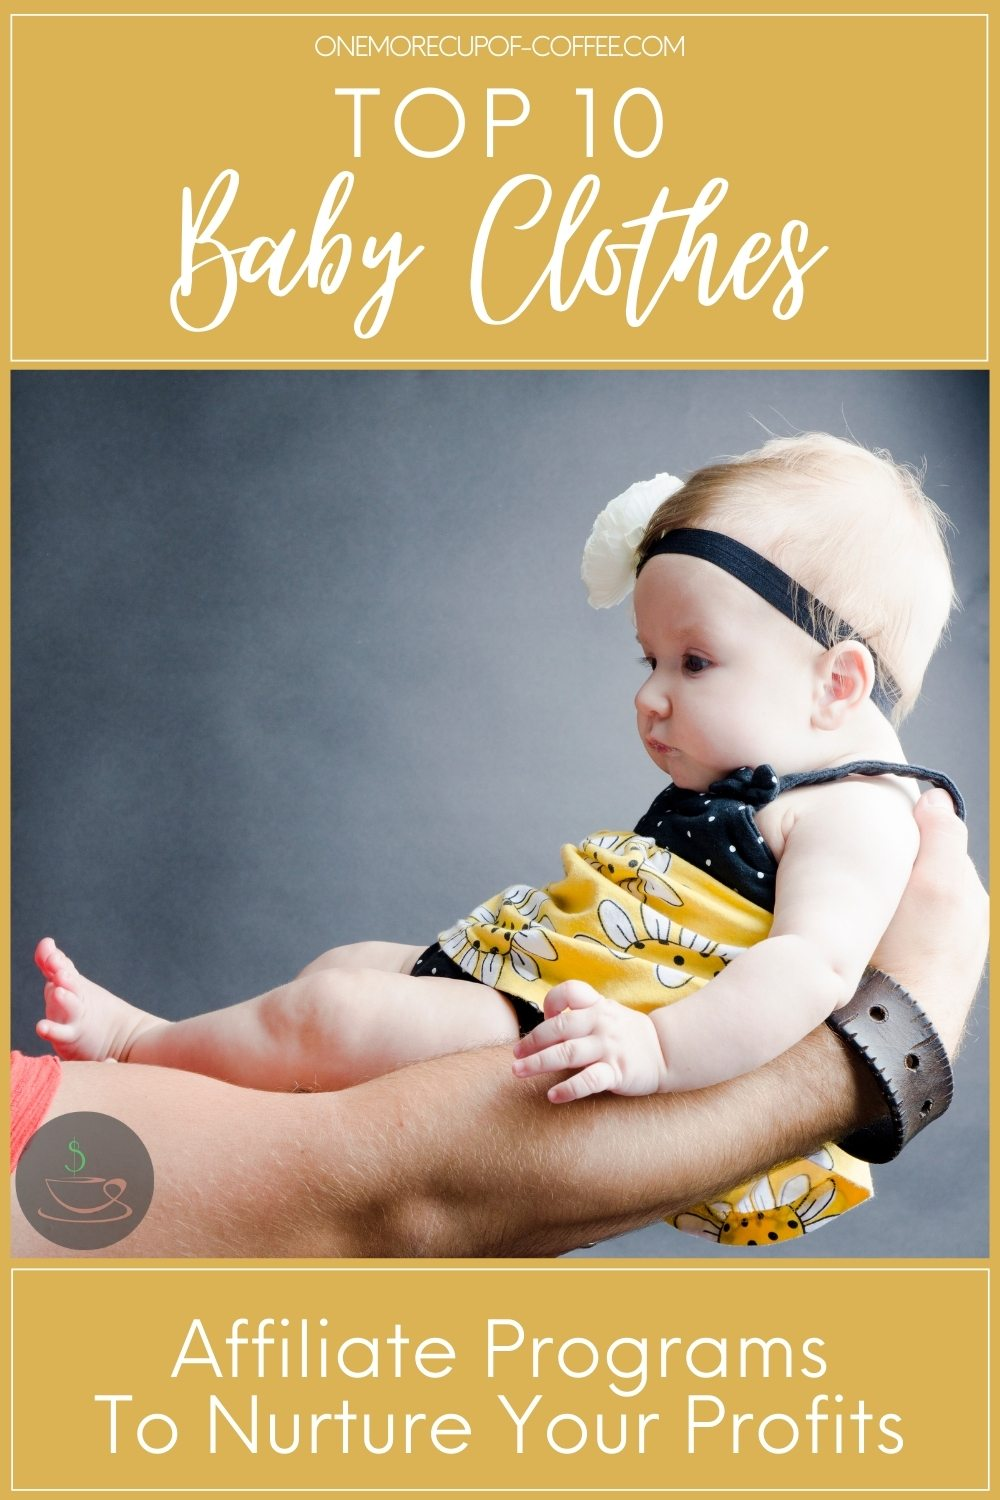 """closeup image of a baby's side profile in black and yellow little dress with black headband with white flower; with text overlay """"Top 10 Baby Clothes Affiliate Programs To Nurture Your Profits"""""""